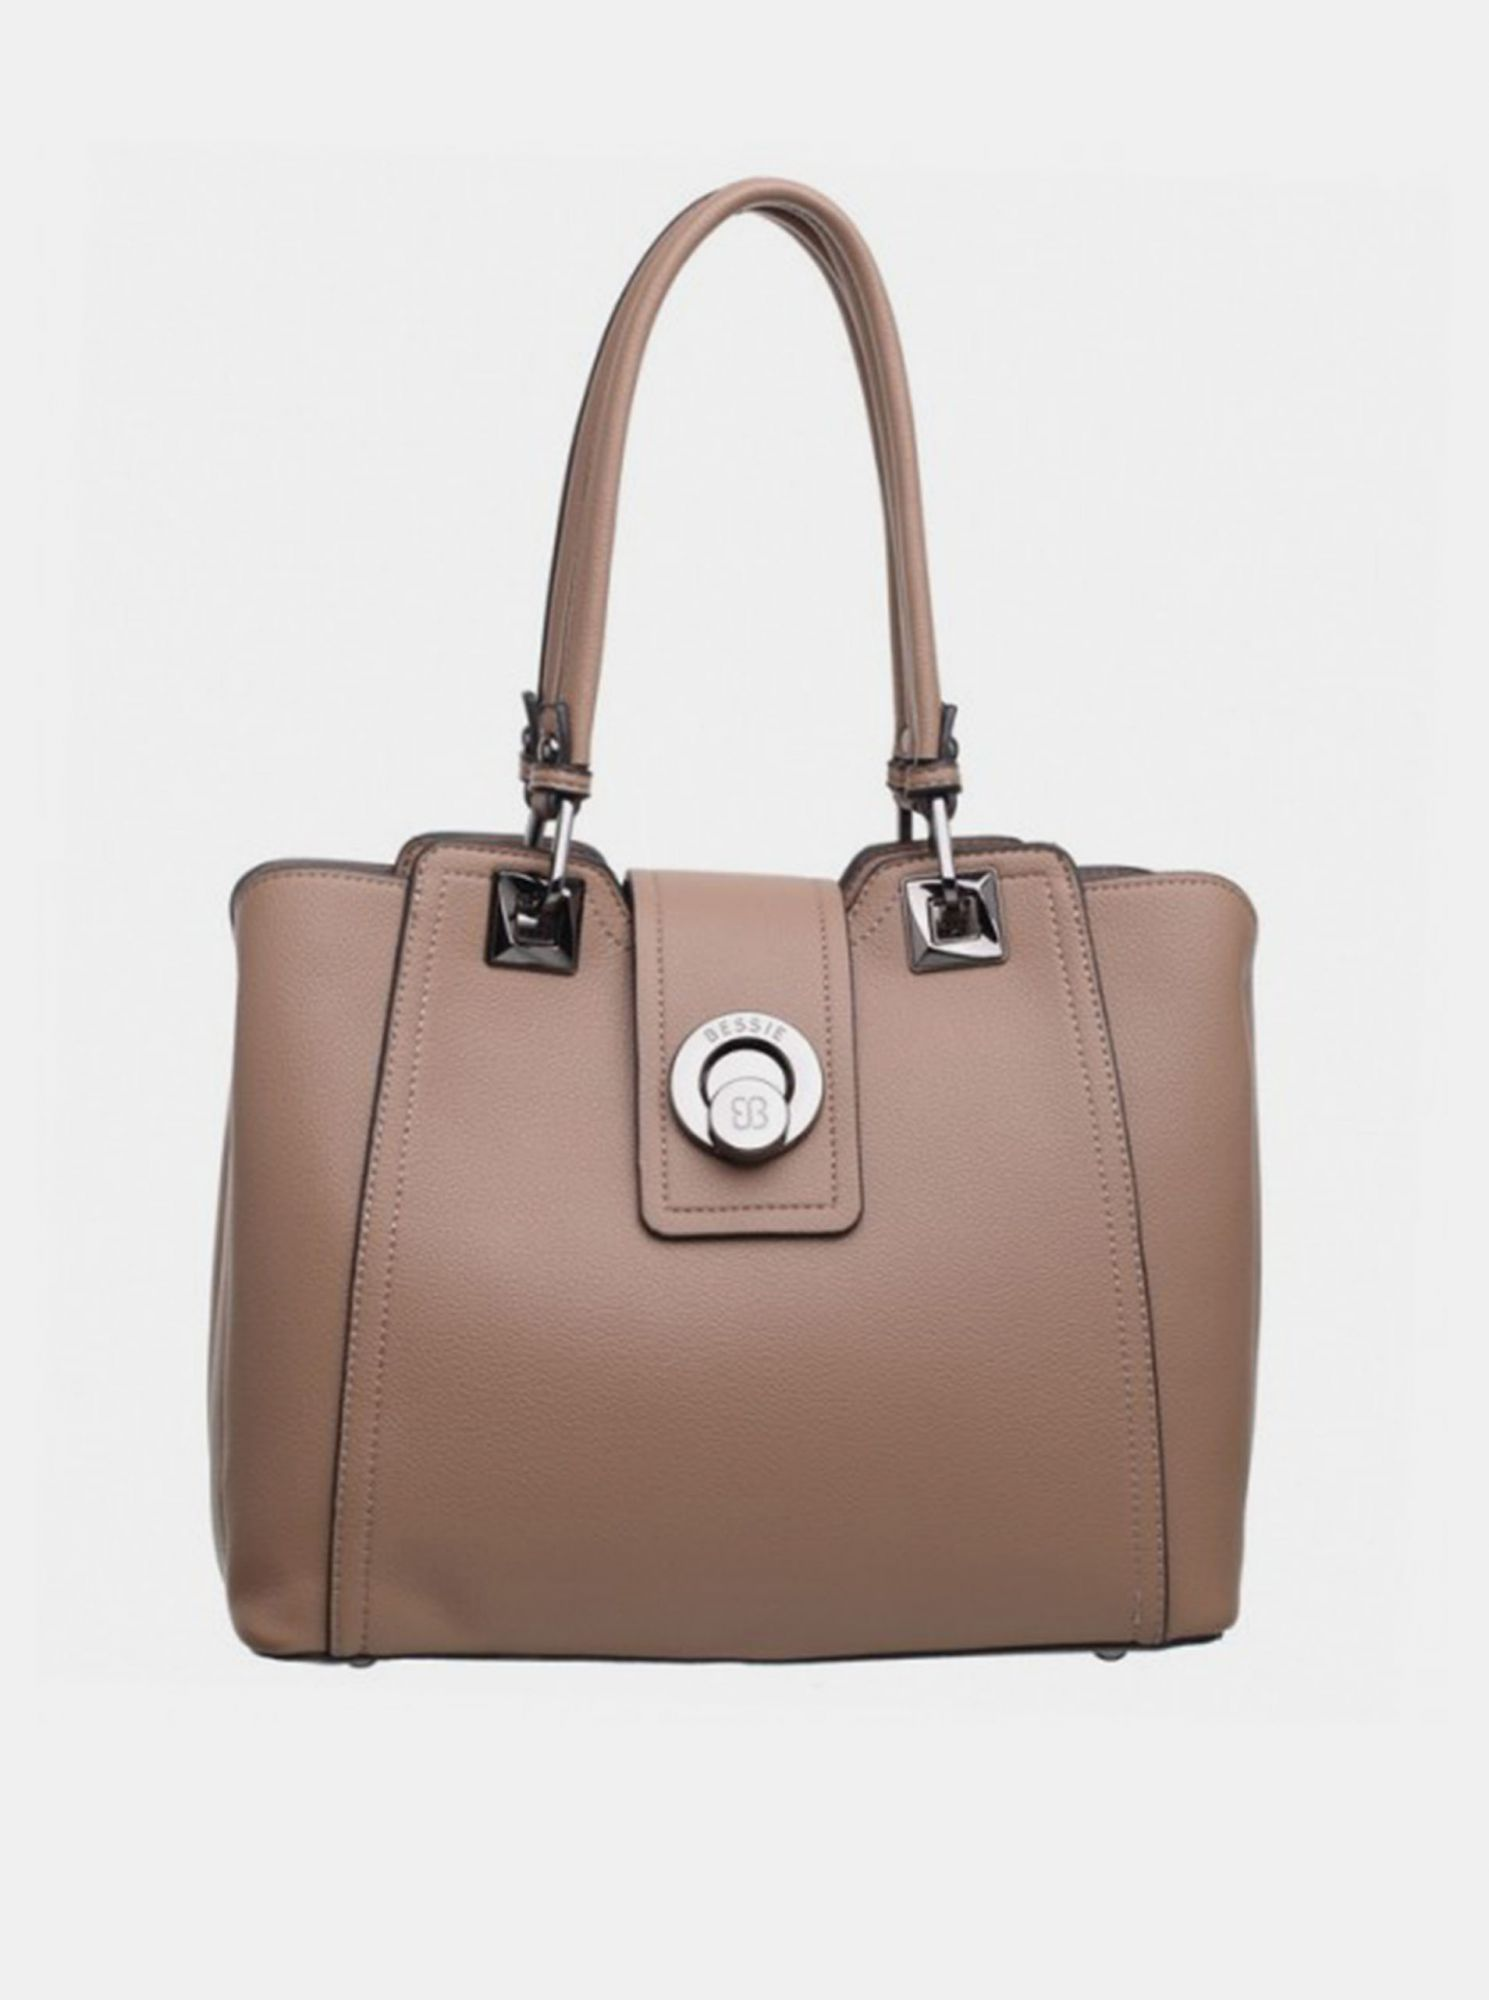 Beige Bessie London handbag